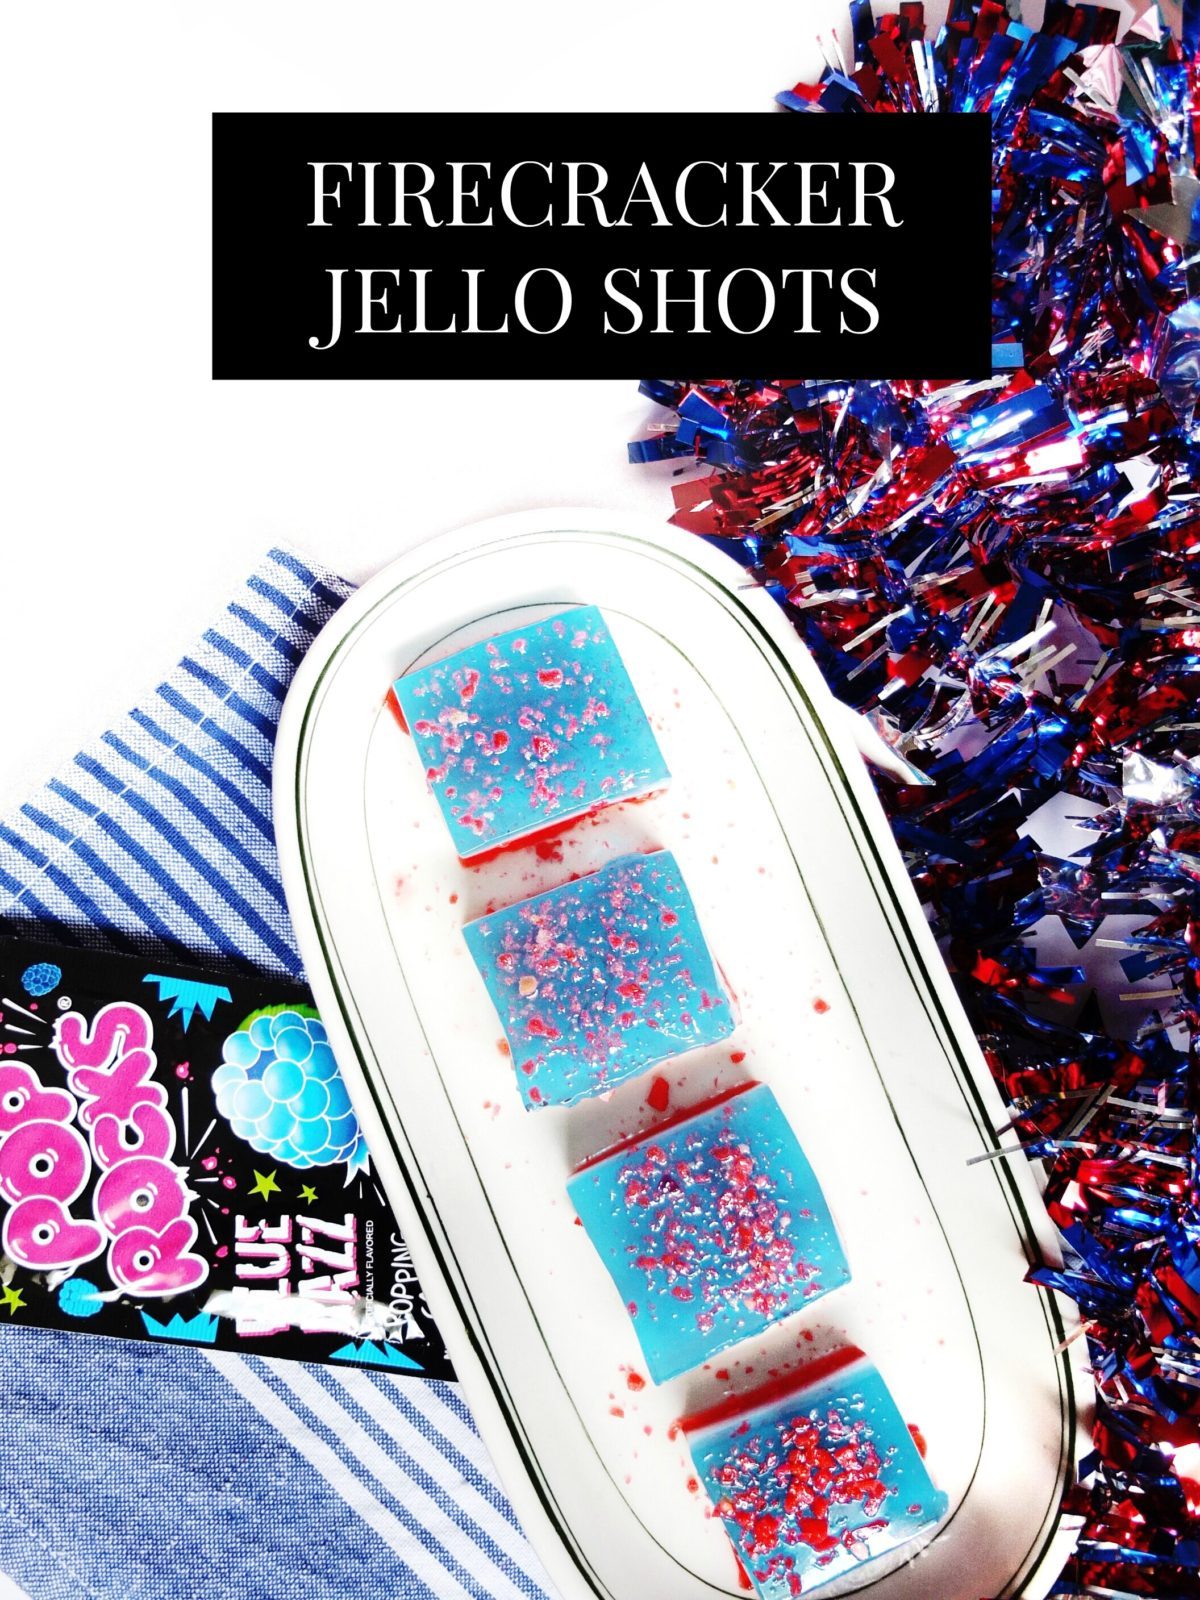 These easy to make red, white, and blue jello shots are the perfect jello shot for Fourth of July or memorial day weekend. The Pop Rock cocktails are topped with pop rocks for a fun firecracker kick to the original jello shot. Perfect for fourth of july parties and can be made in large batches.  // www.ElleTalk.com